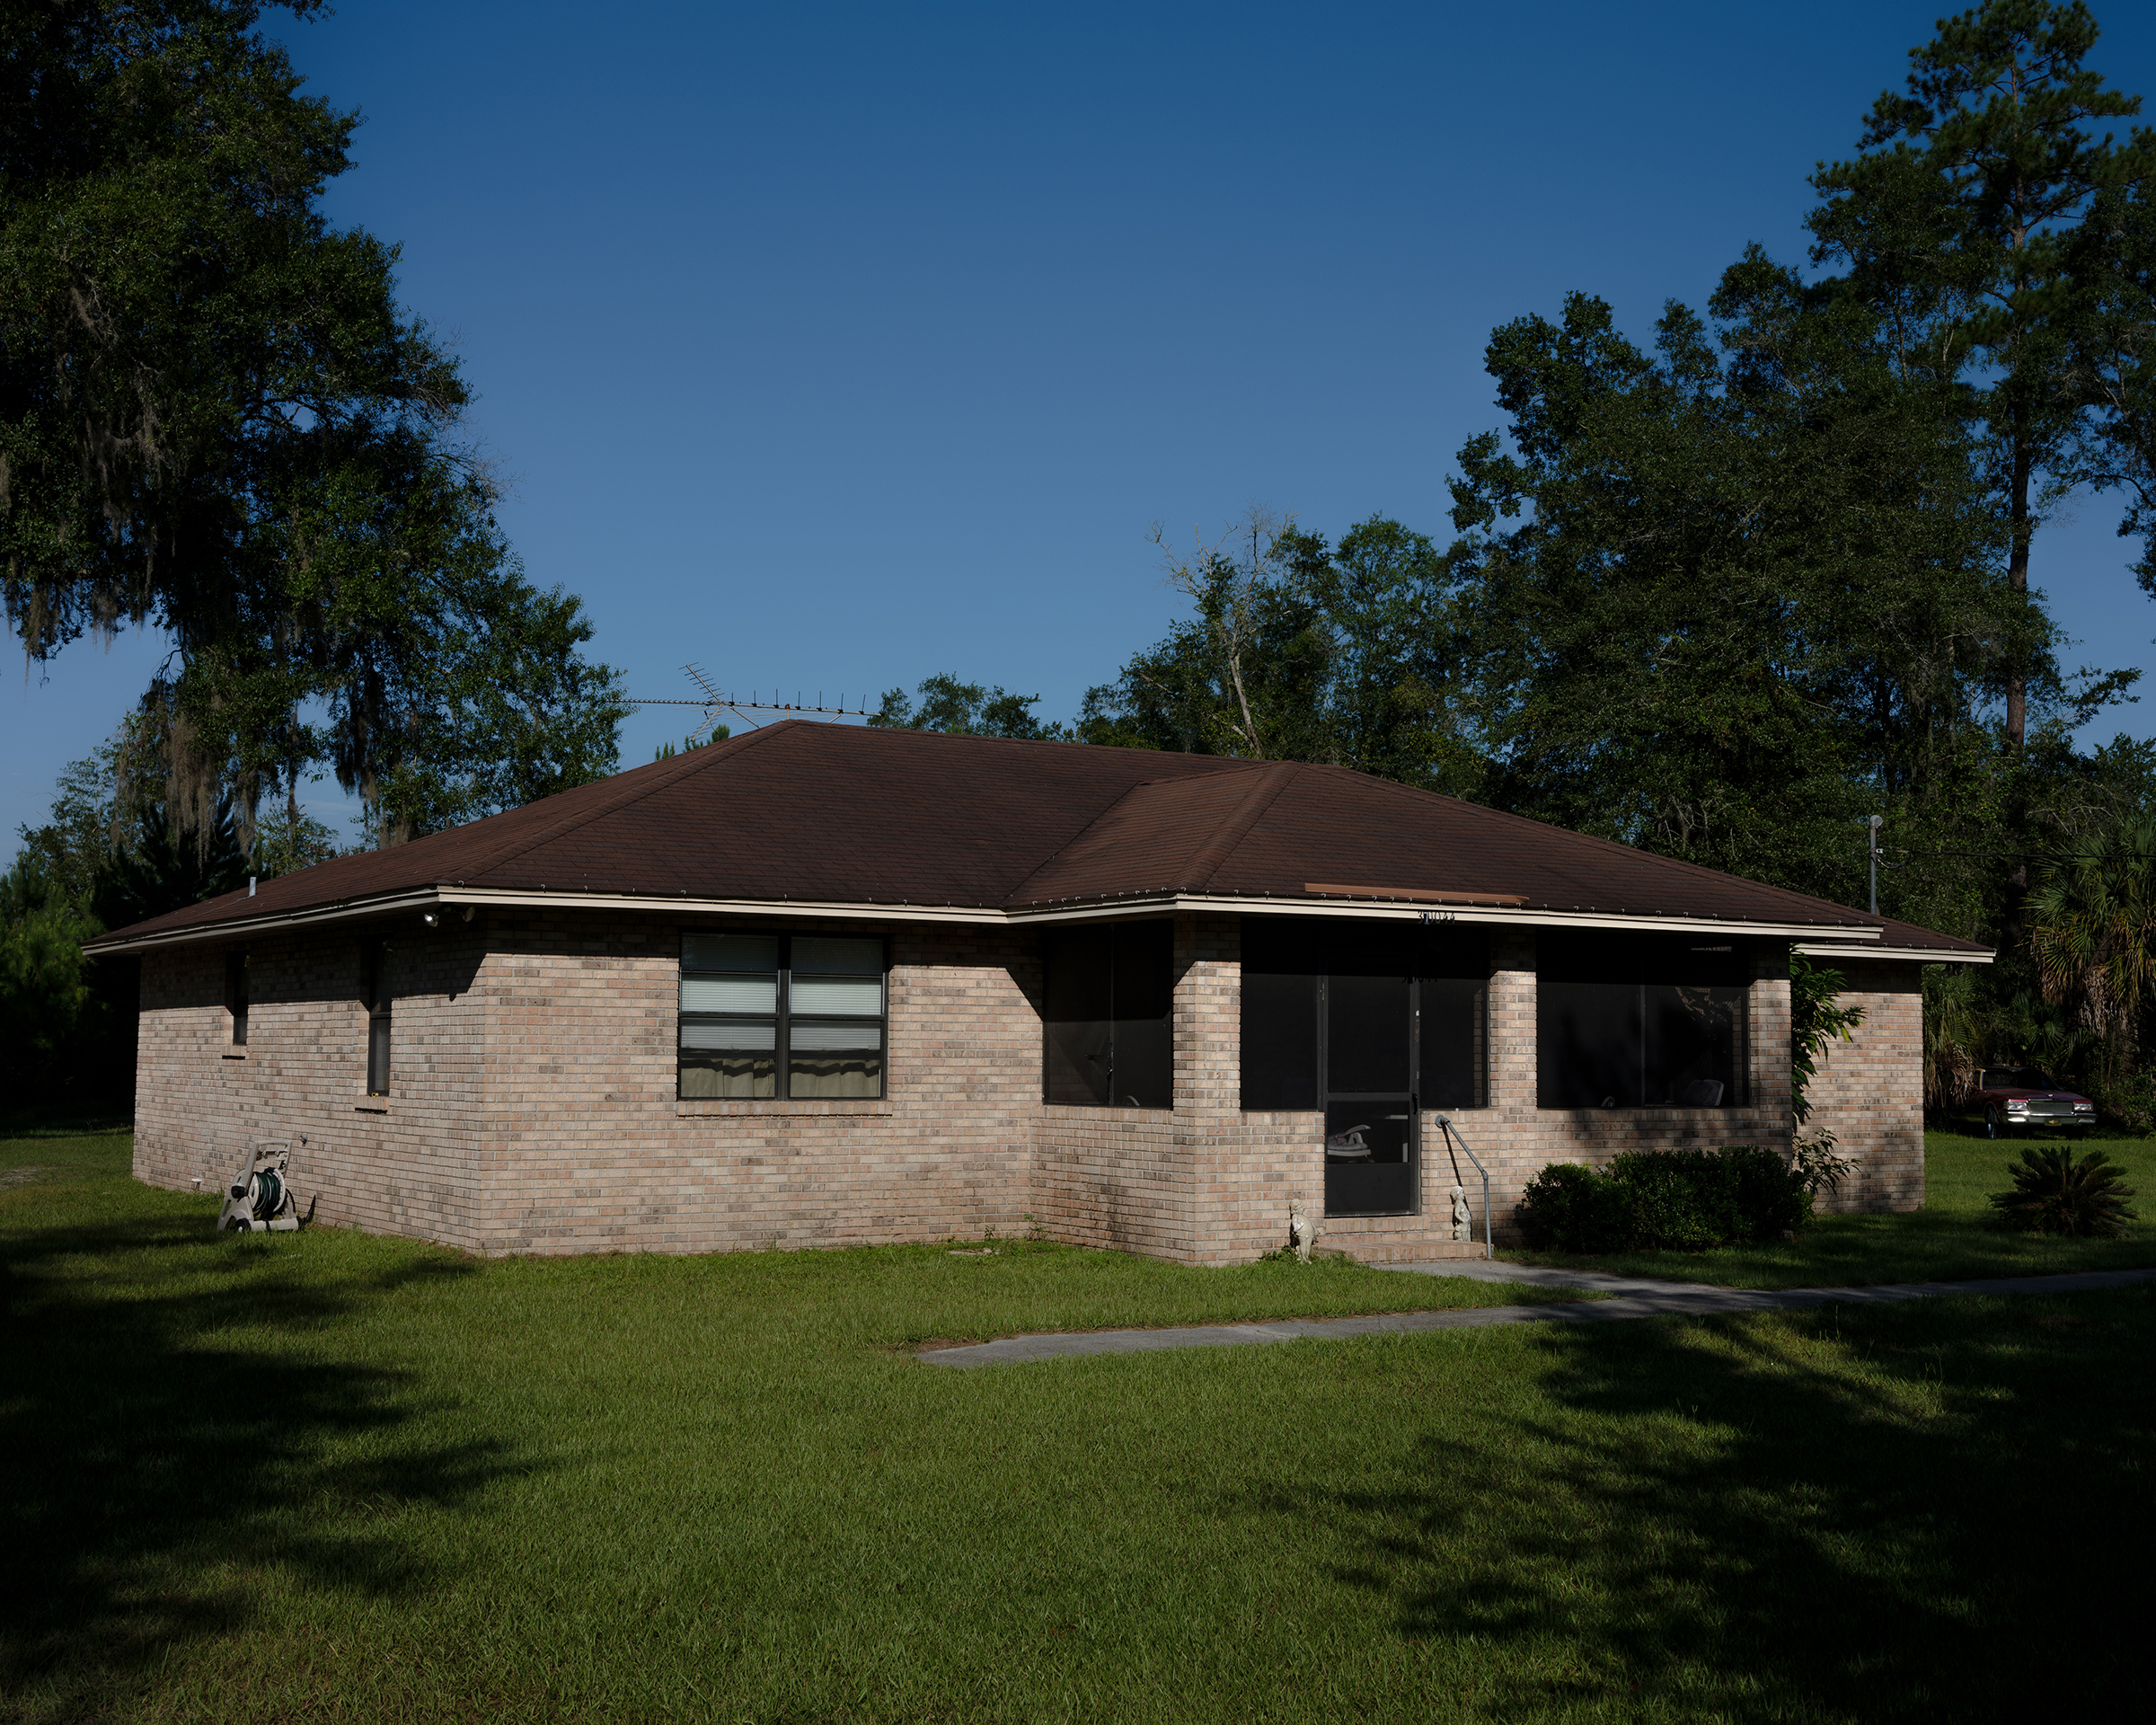 Mary Hall Daniels built a three-bedroom home in Hilliard, Fla., after receiving $150,000 from the state as a Rosewood survivor.